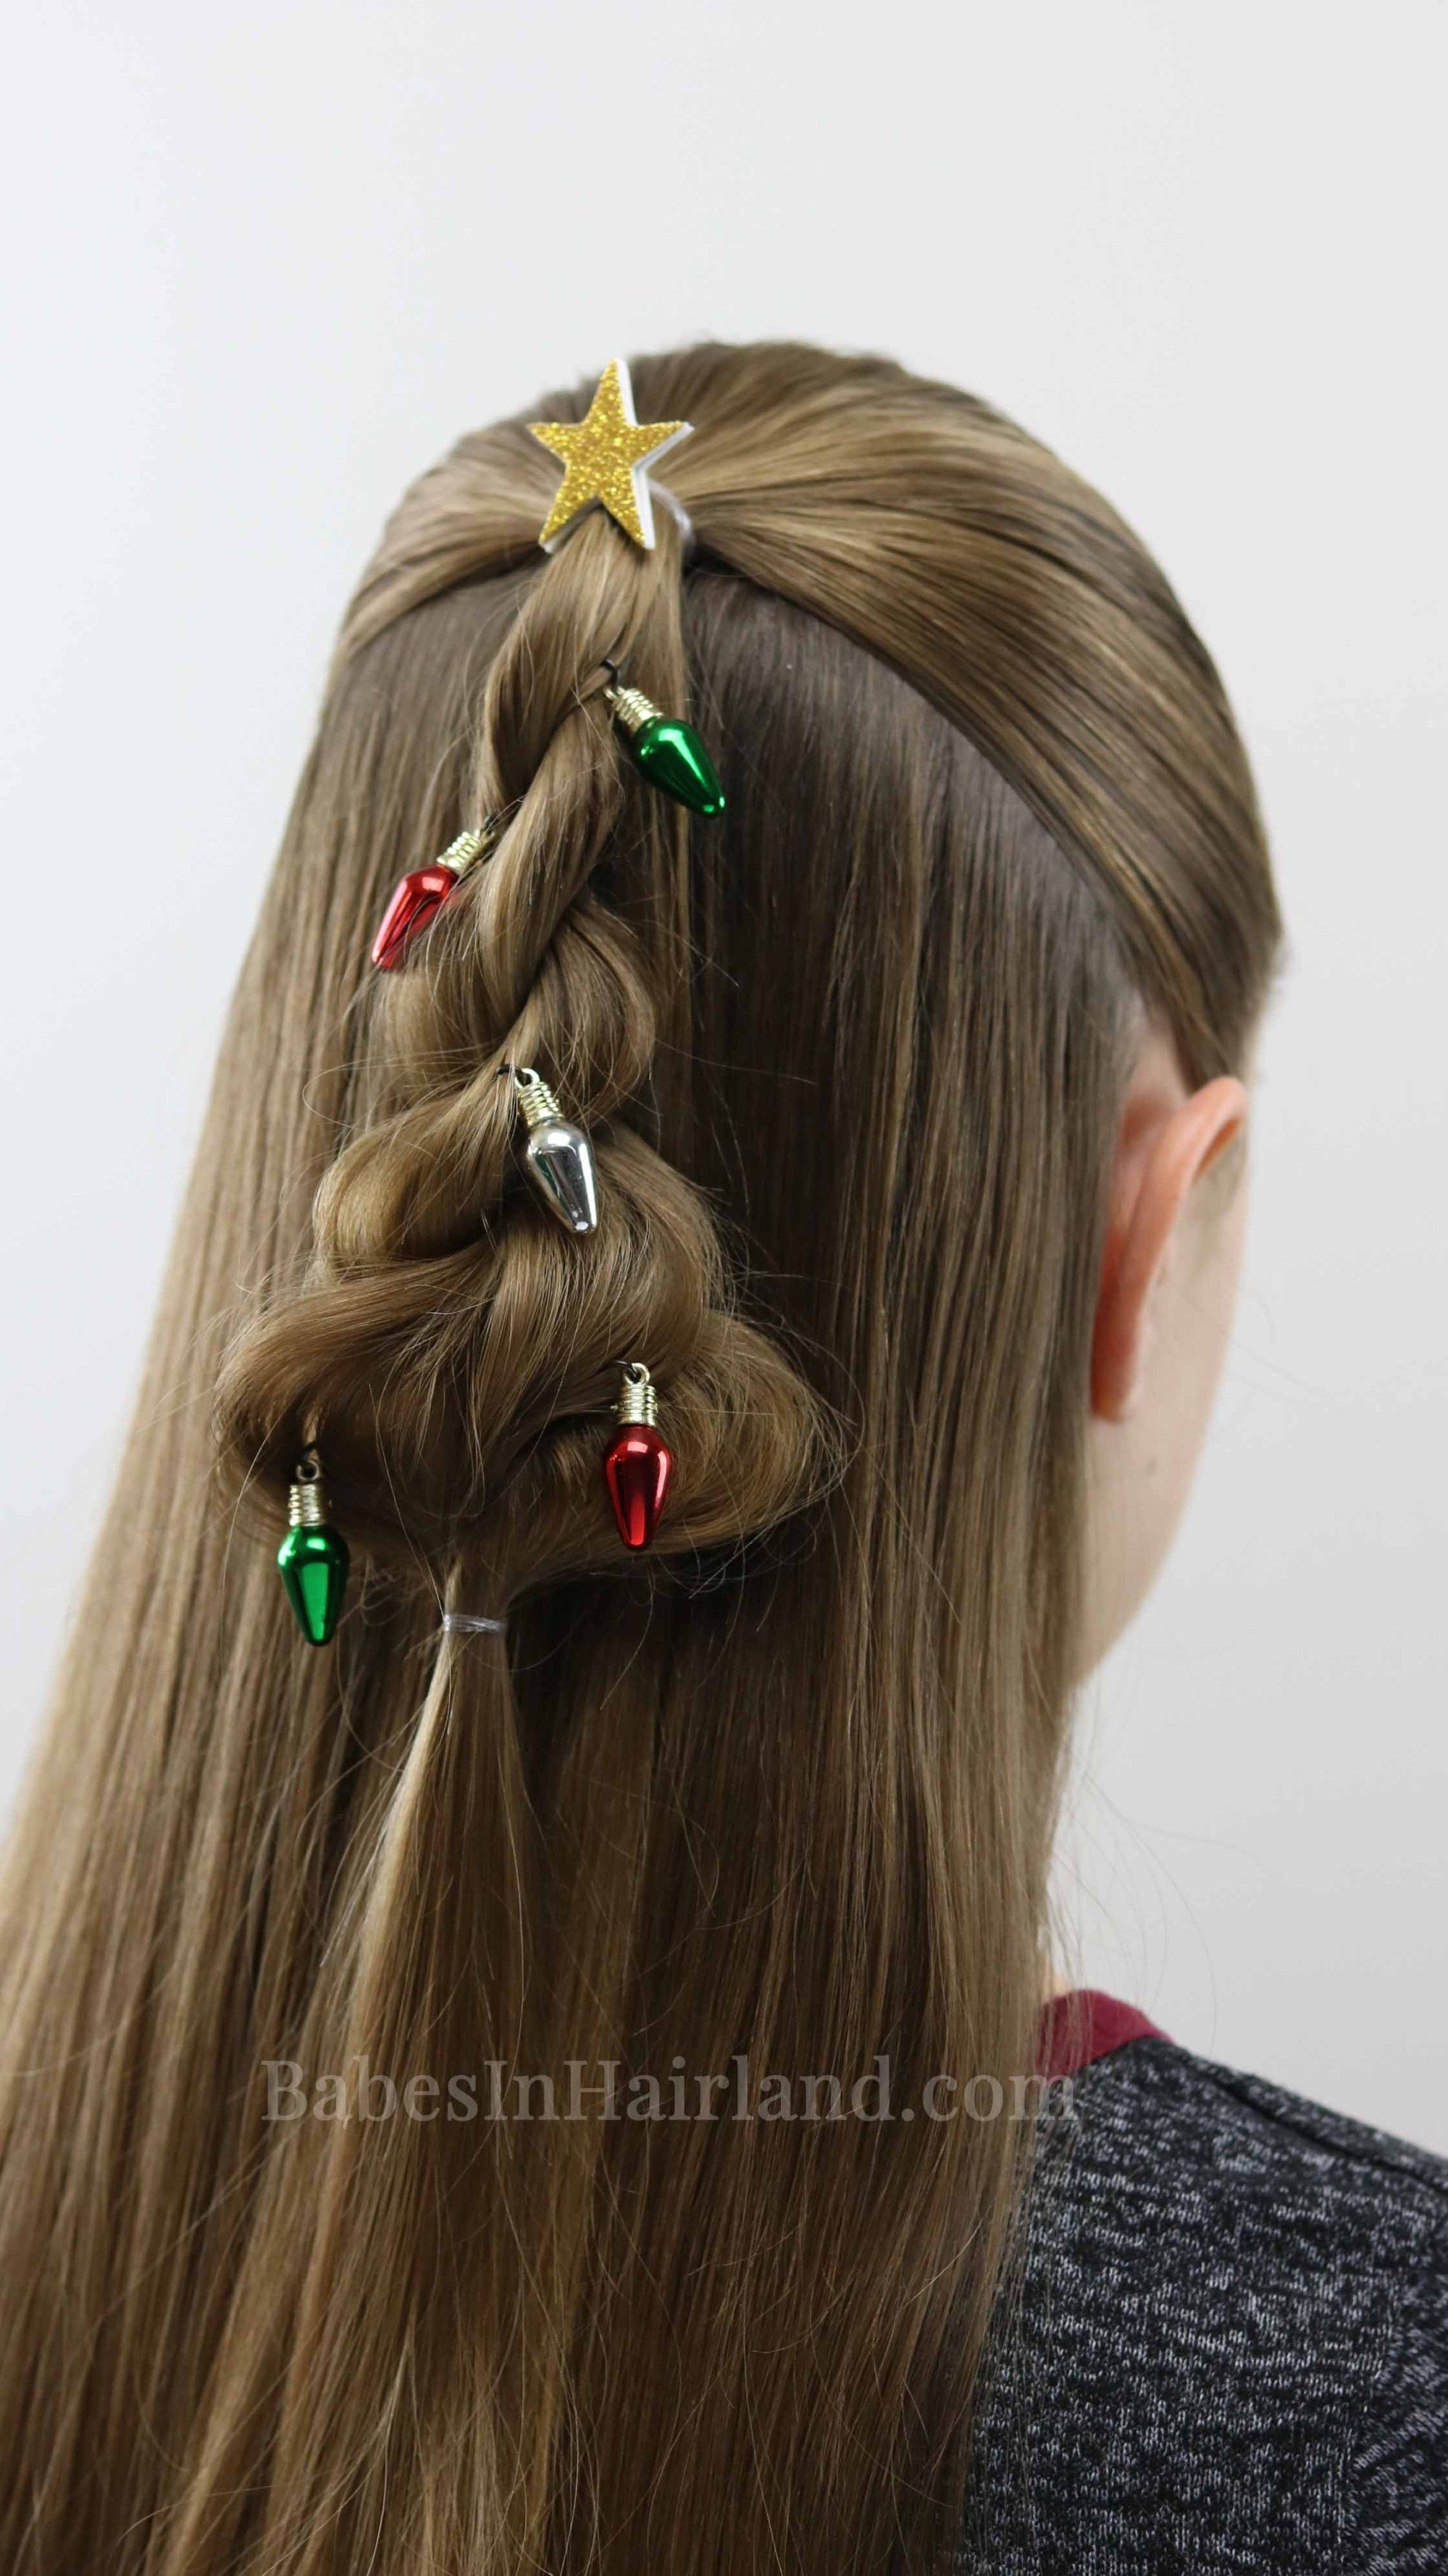 Decorate Your Hair For Christmas Too With This Cute Twisted Christmas Tree Hairstyle From Babesinhairland Com Current Hair Styles Hair Styles Diy Hairstyles